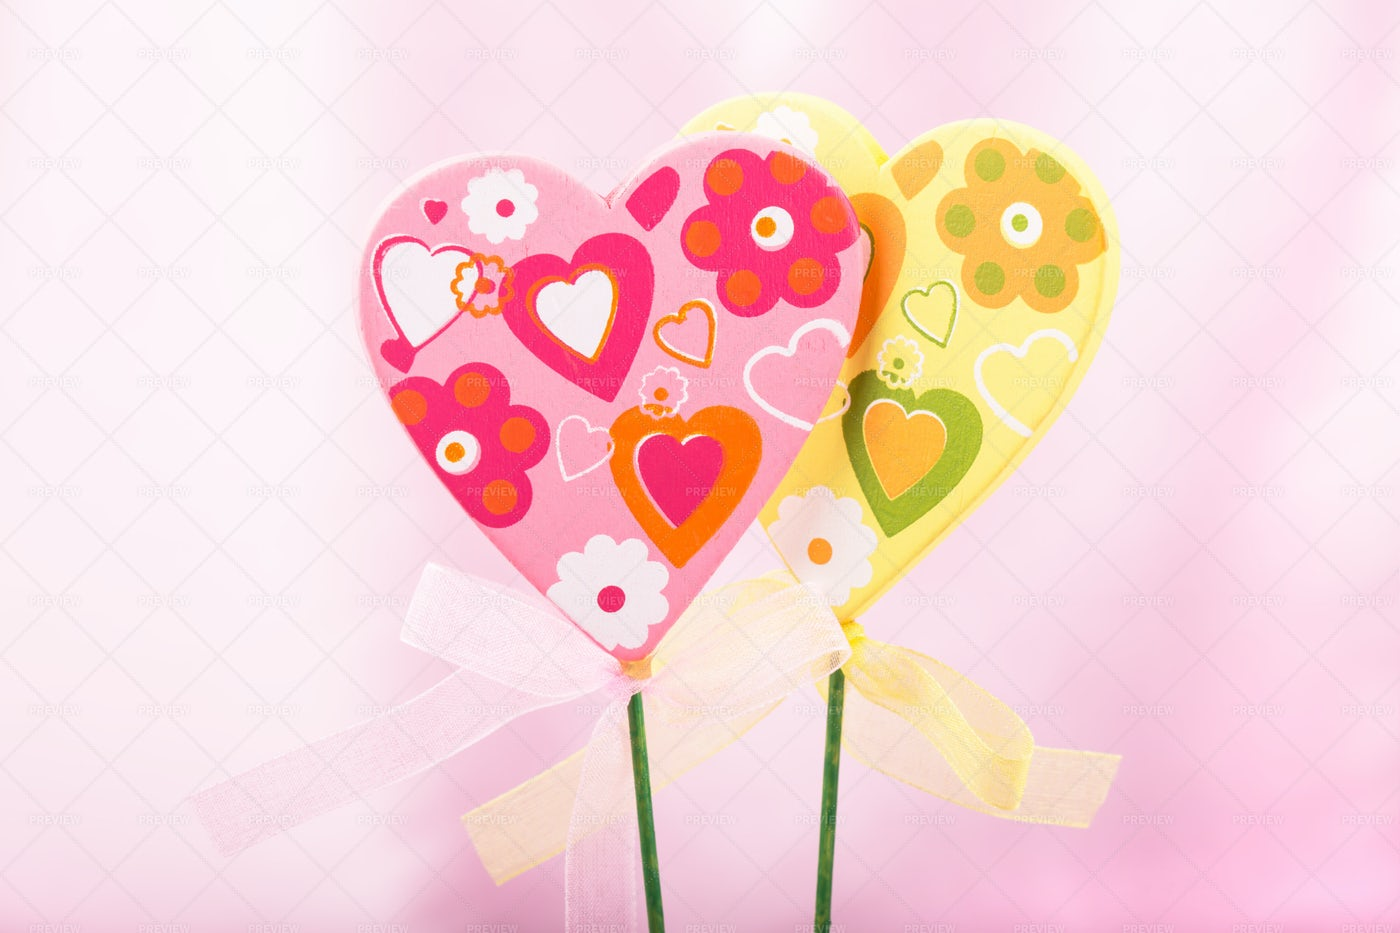 Pink And Yellow Hearts: Stock Photos